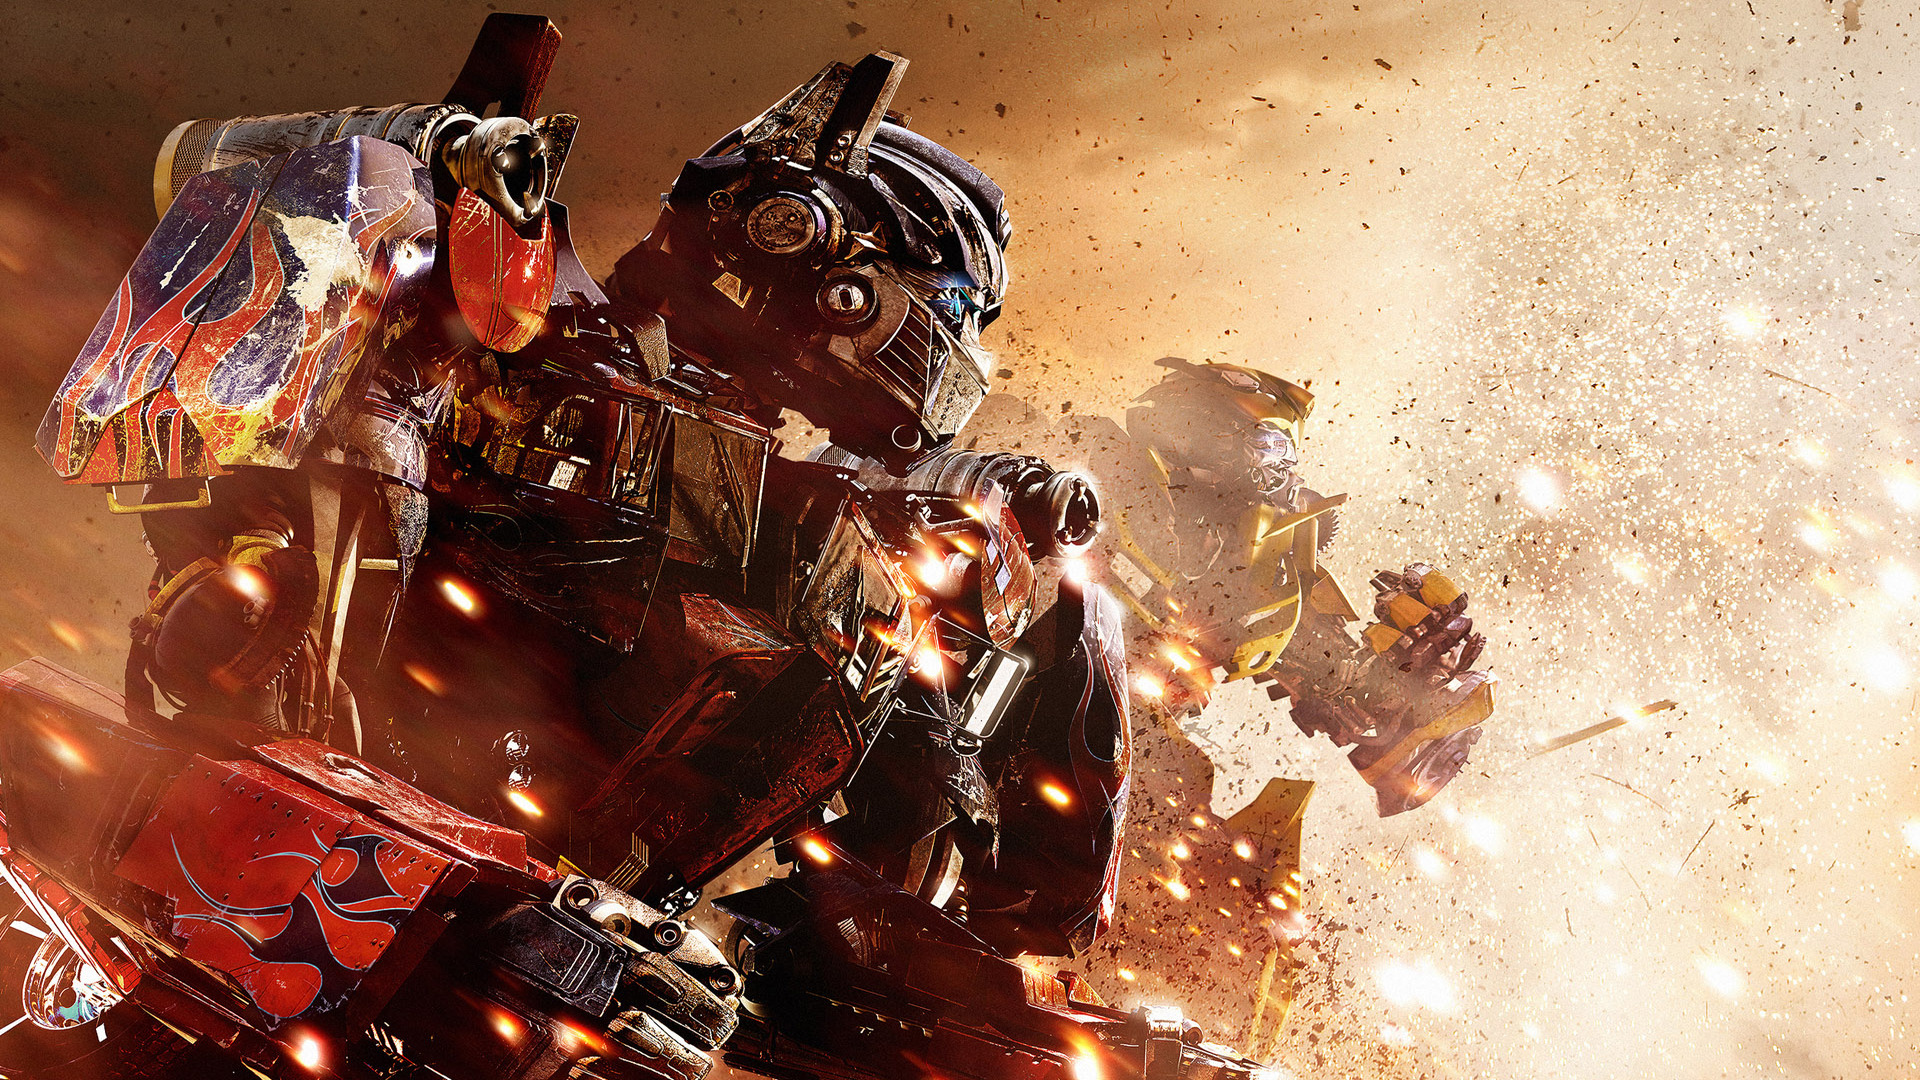 Optimus Bumblebee in Transformers 3